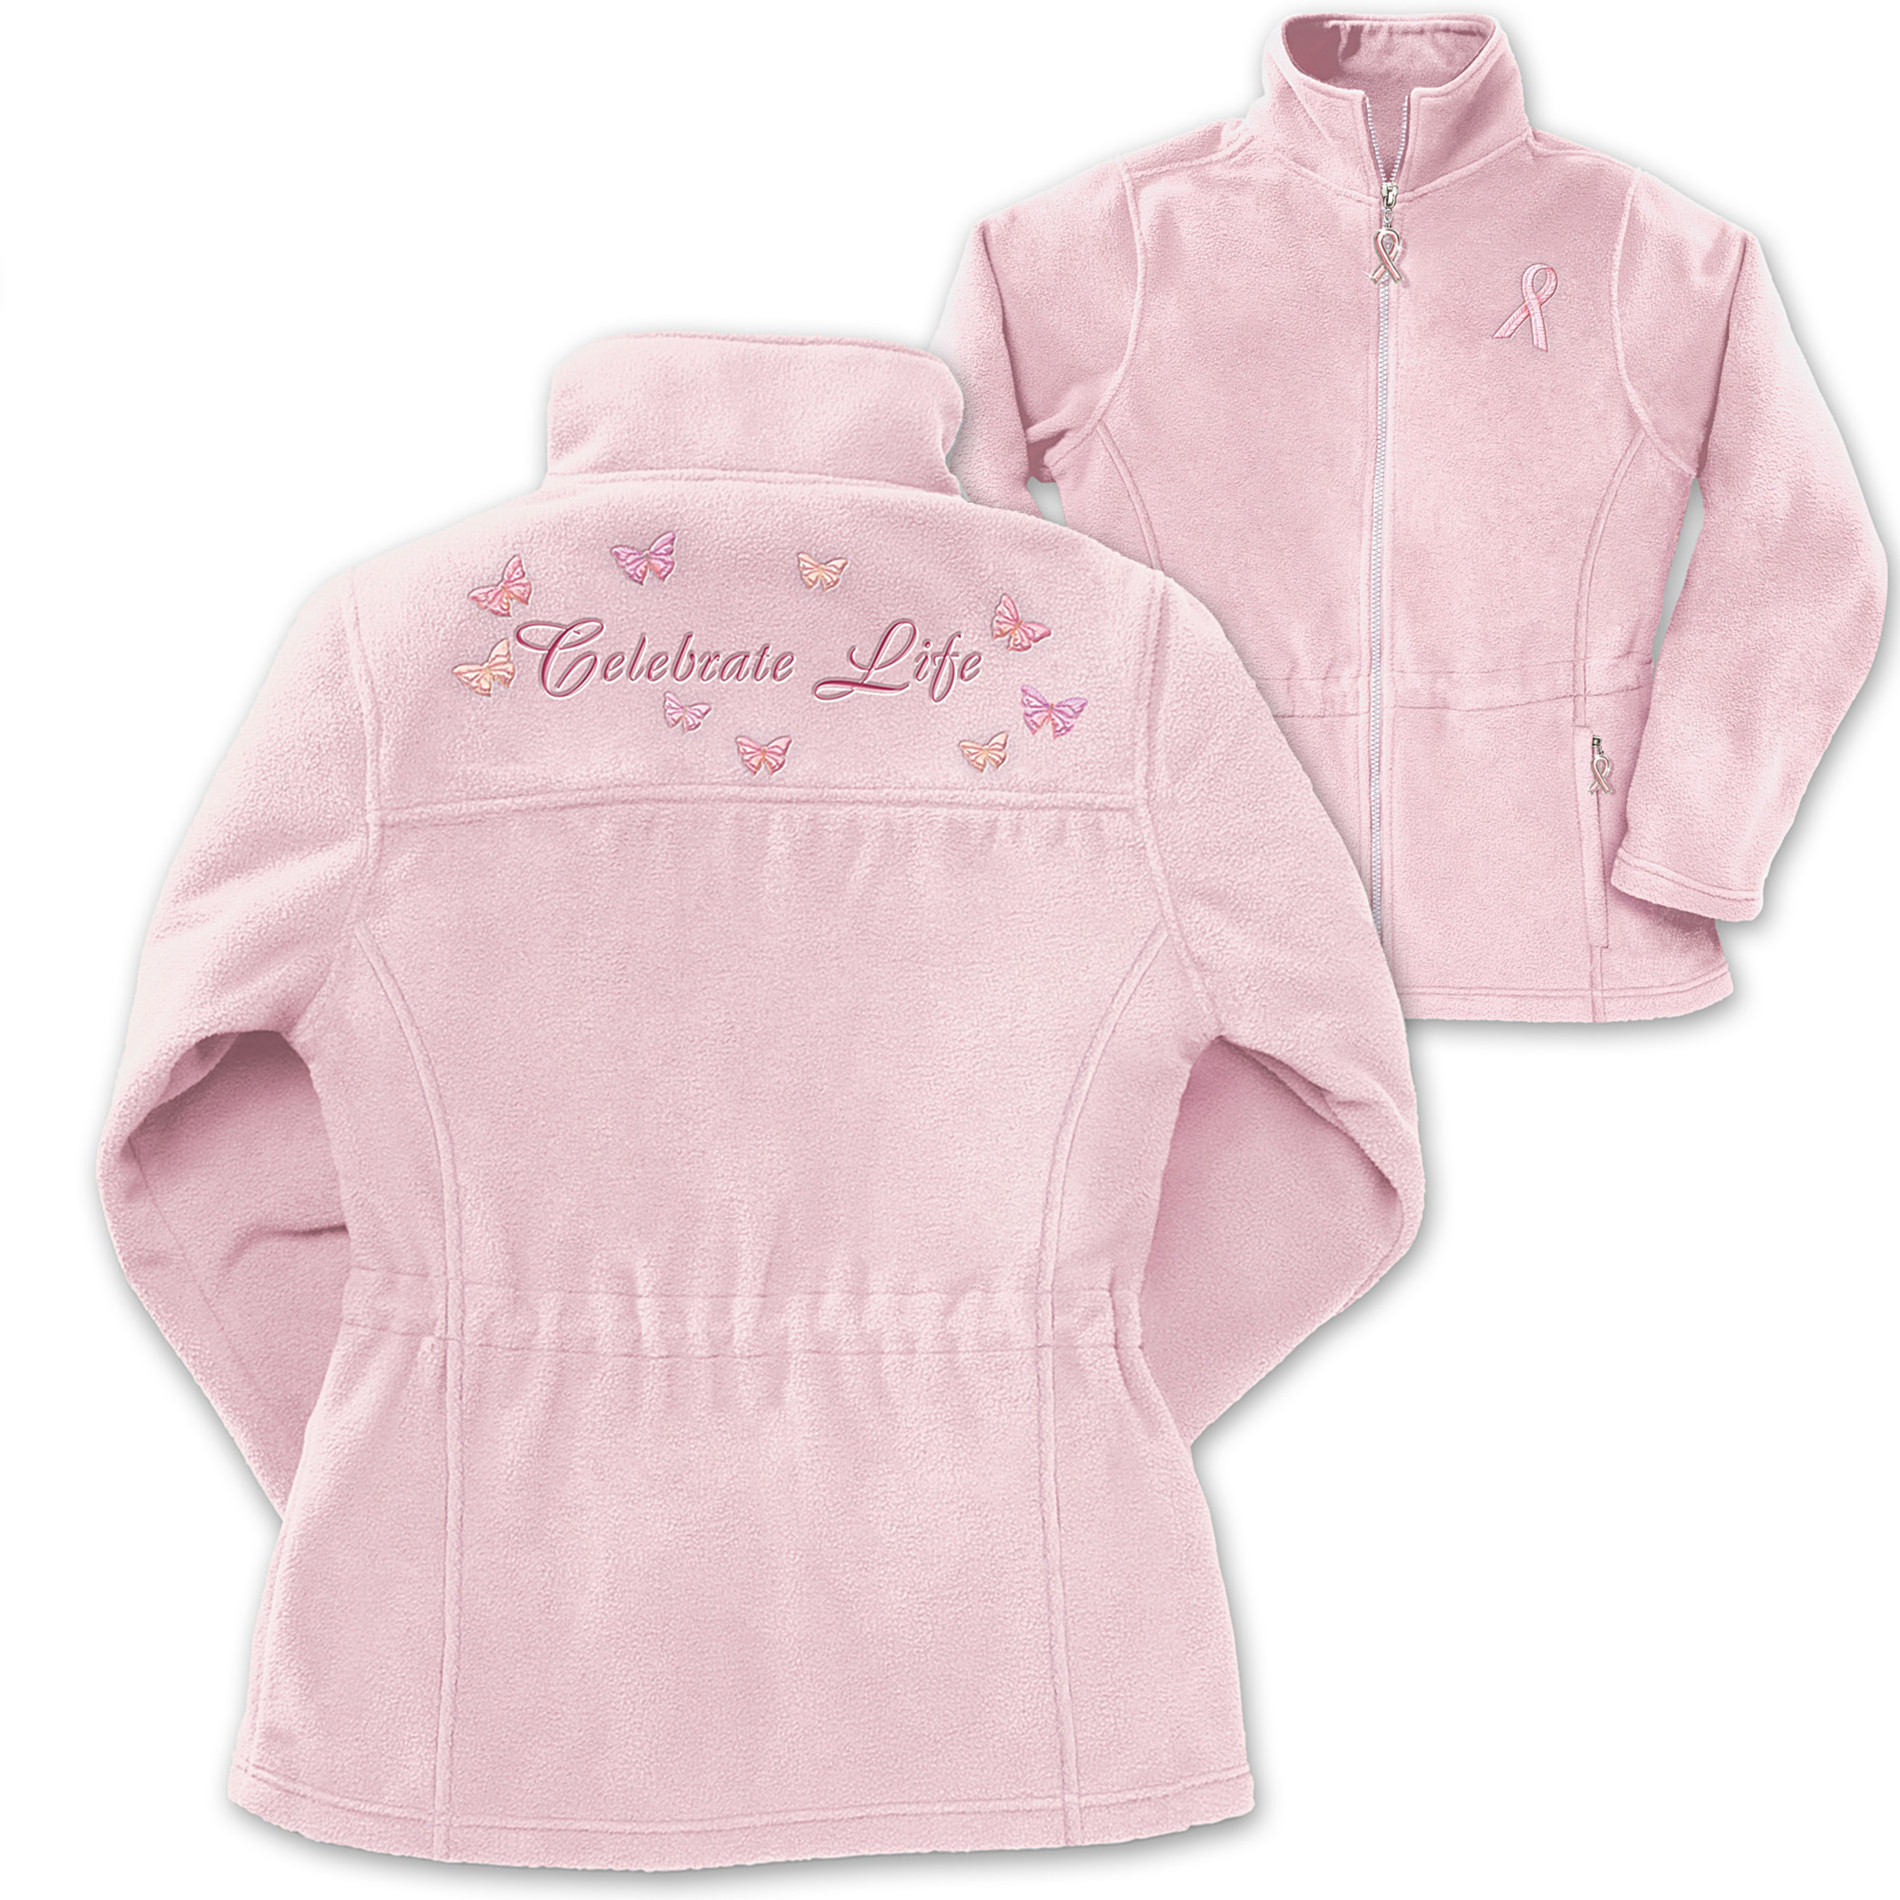 The Bradford Exchange Celebrate Life Embroidered Women's Fleece Jacket: Breast Cancer Charity Apparel Gift at Sears.com